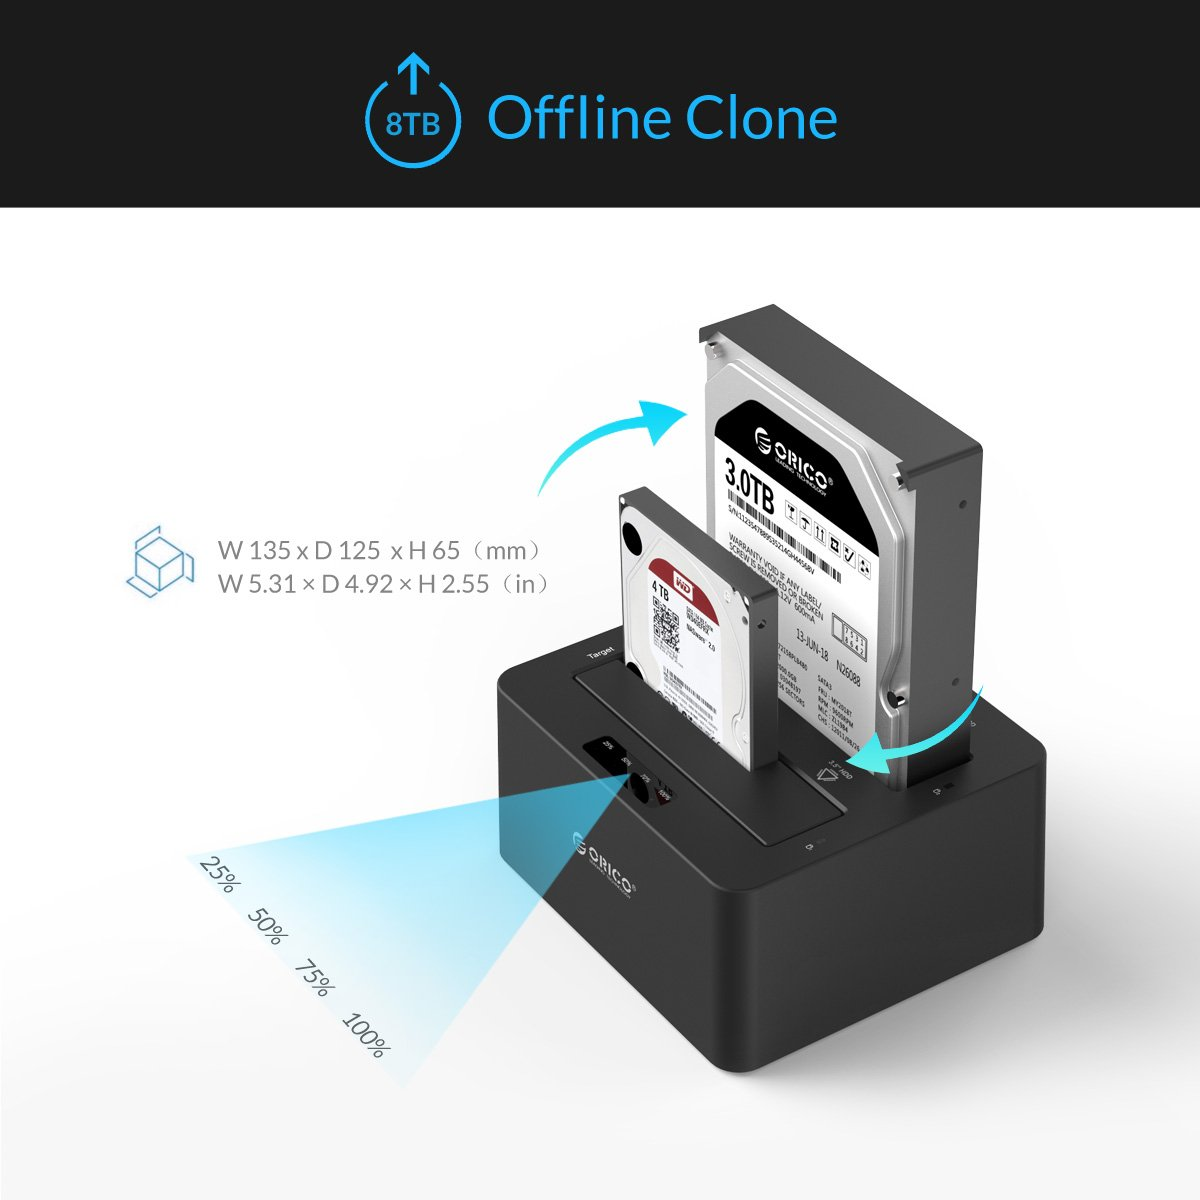 ORICO Dual-Bay 2.5'' 3.5'' USB 3.0 to SATA Hard Drive Docking Station with Offline Duplicator and Clone Function [UASP Protocol and 2 x 8TB Supported]- Black by ORICO (Image #6)